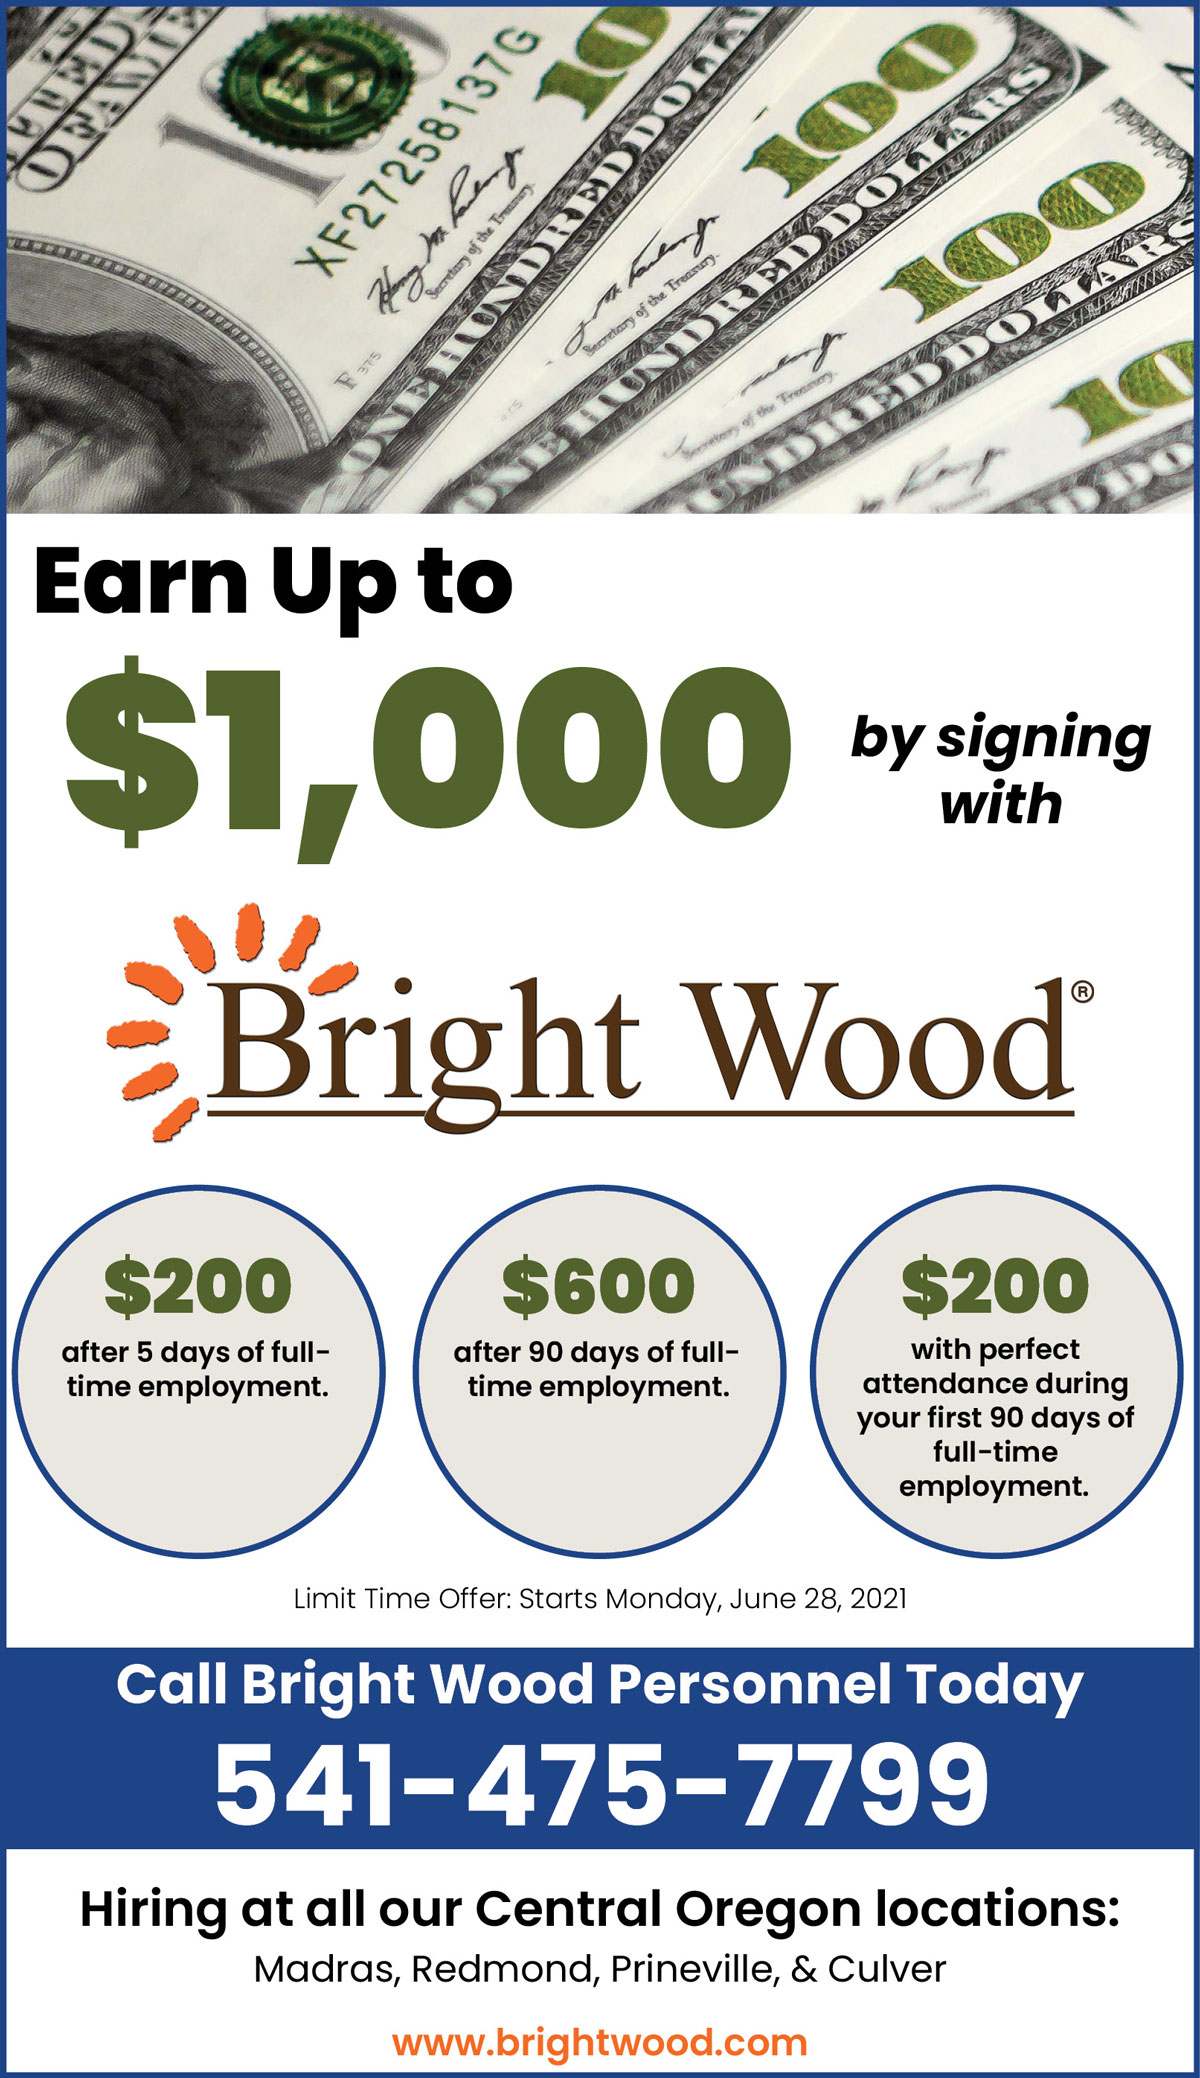 Earn up to $1,000 by signing on with Bright Wood